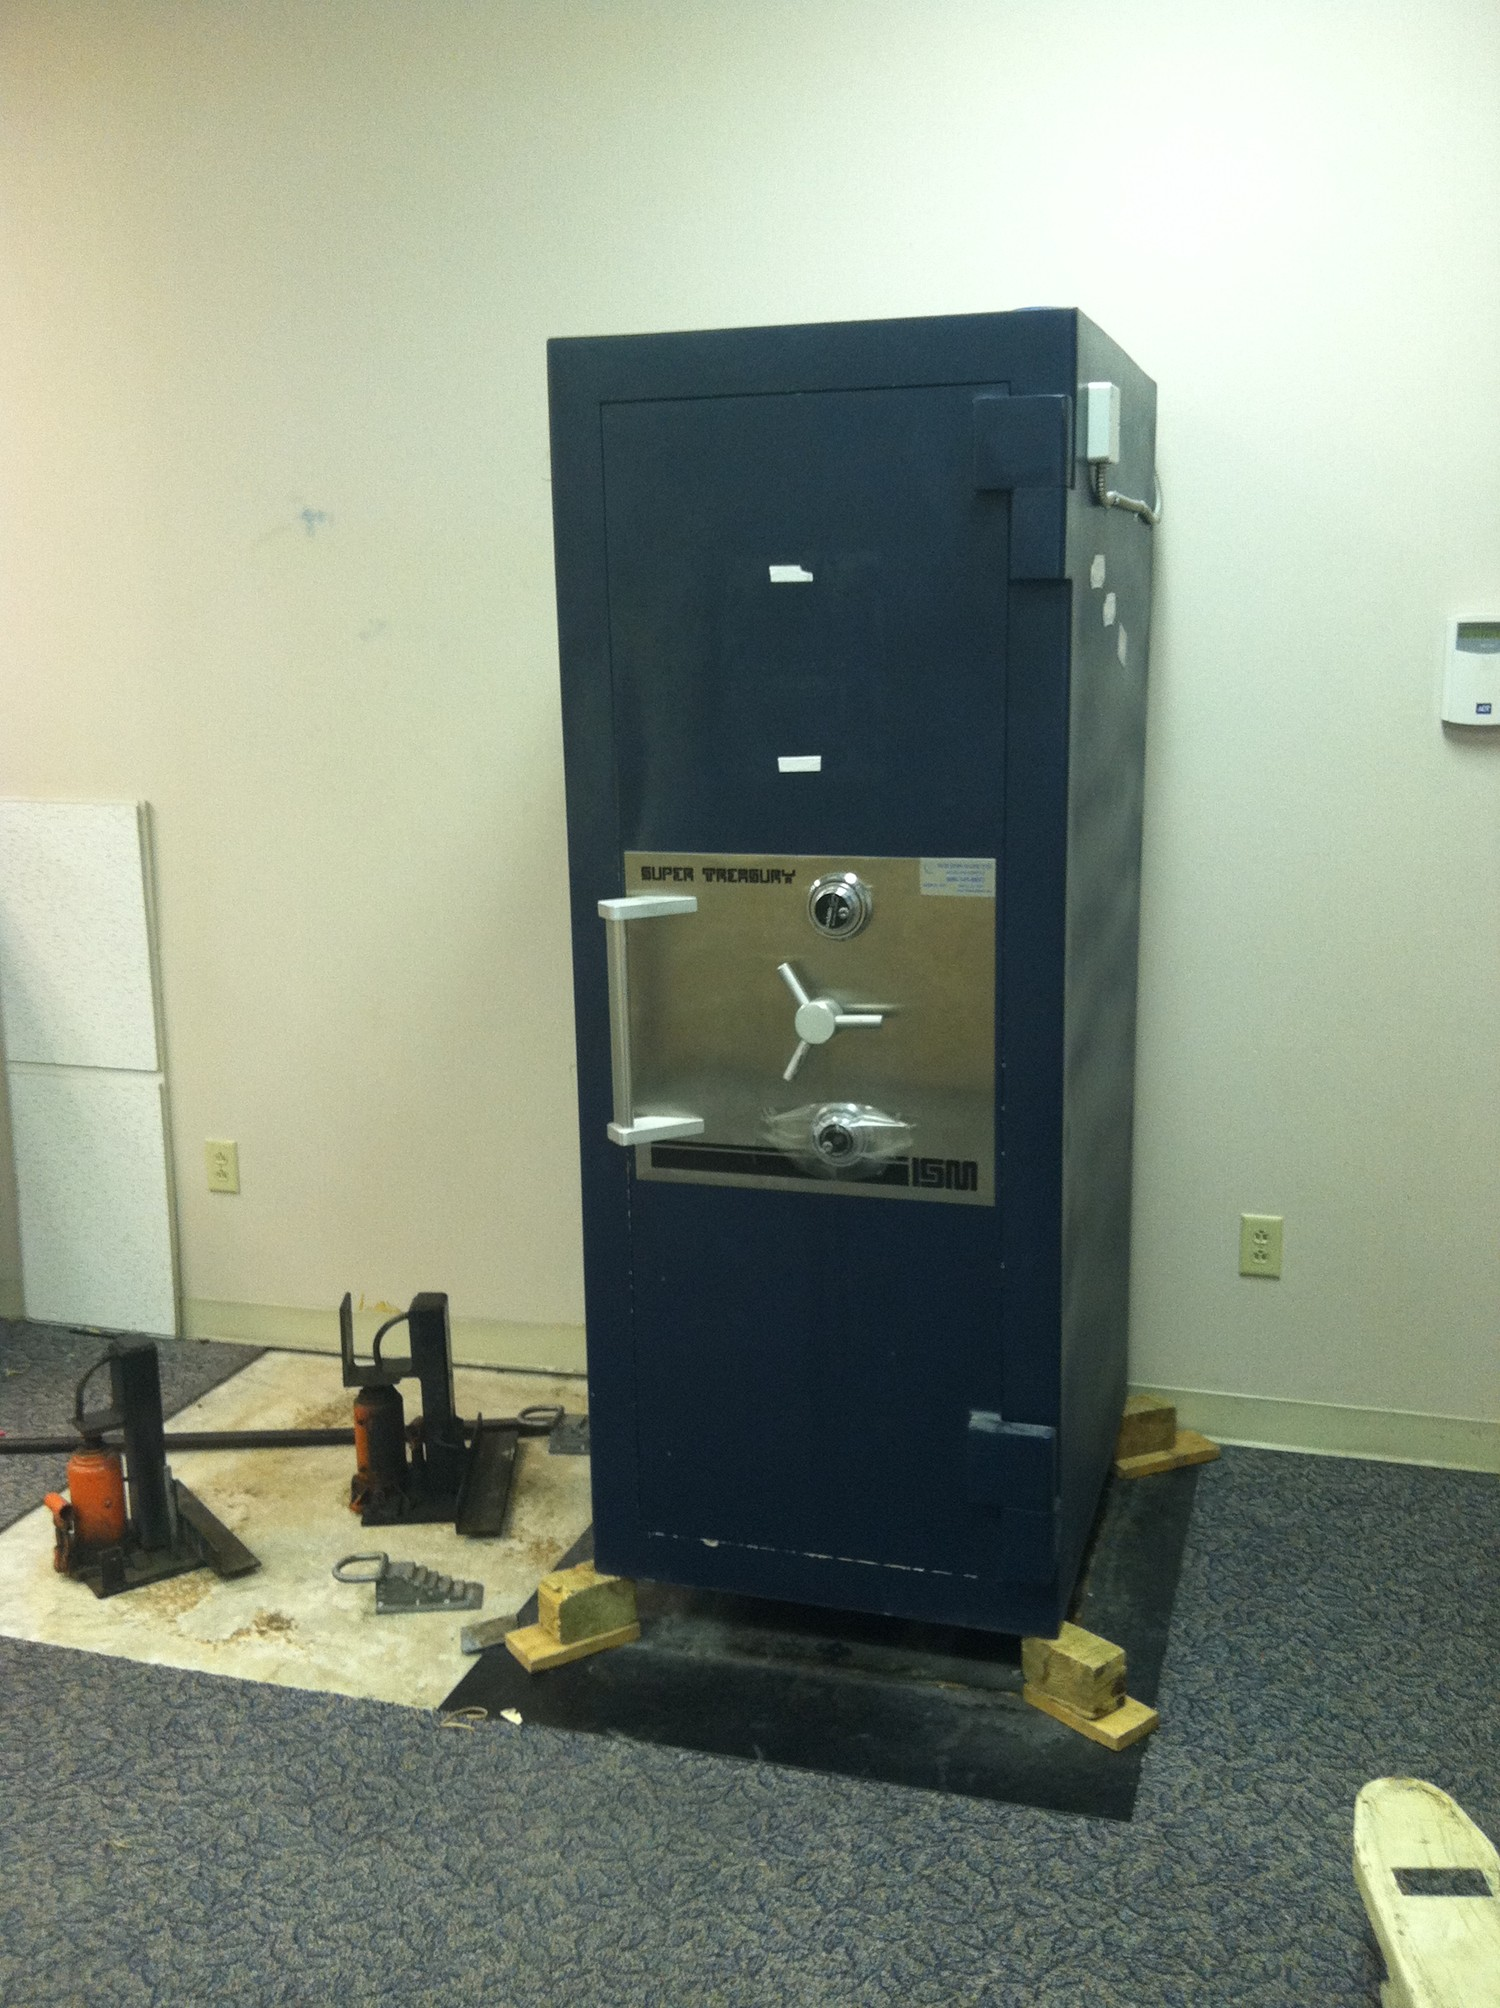 Moving An Ism Super Treasury Tl 30 Bank Safe Tarrant